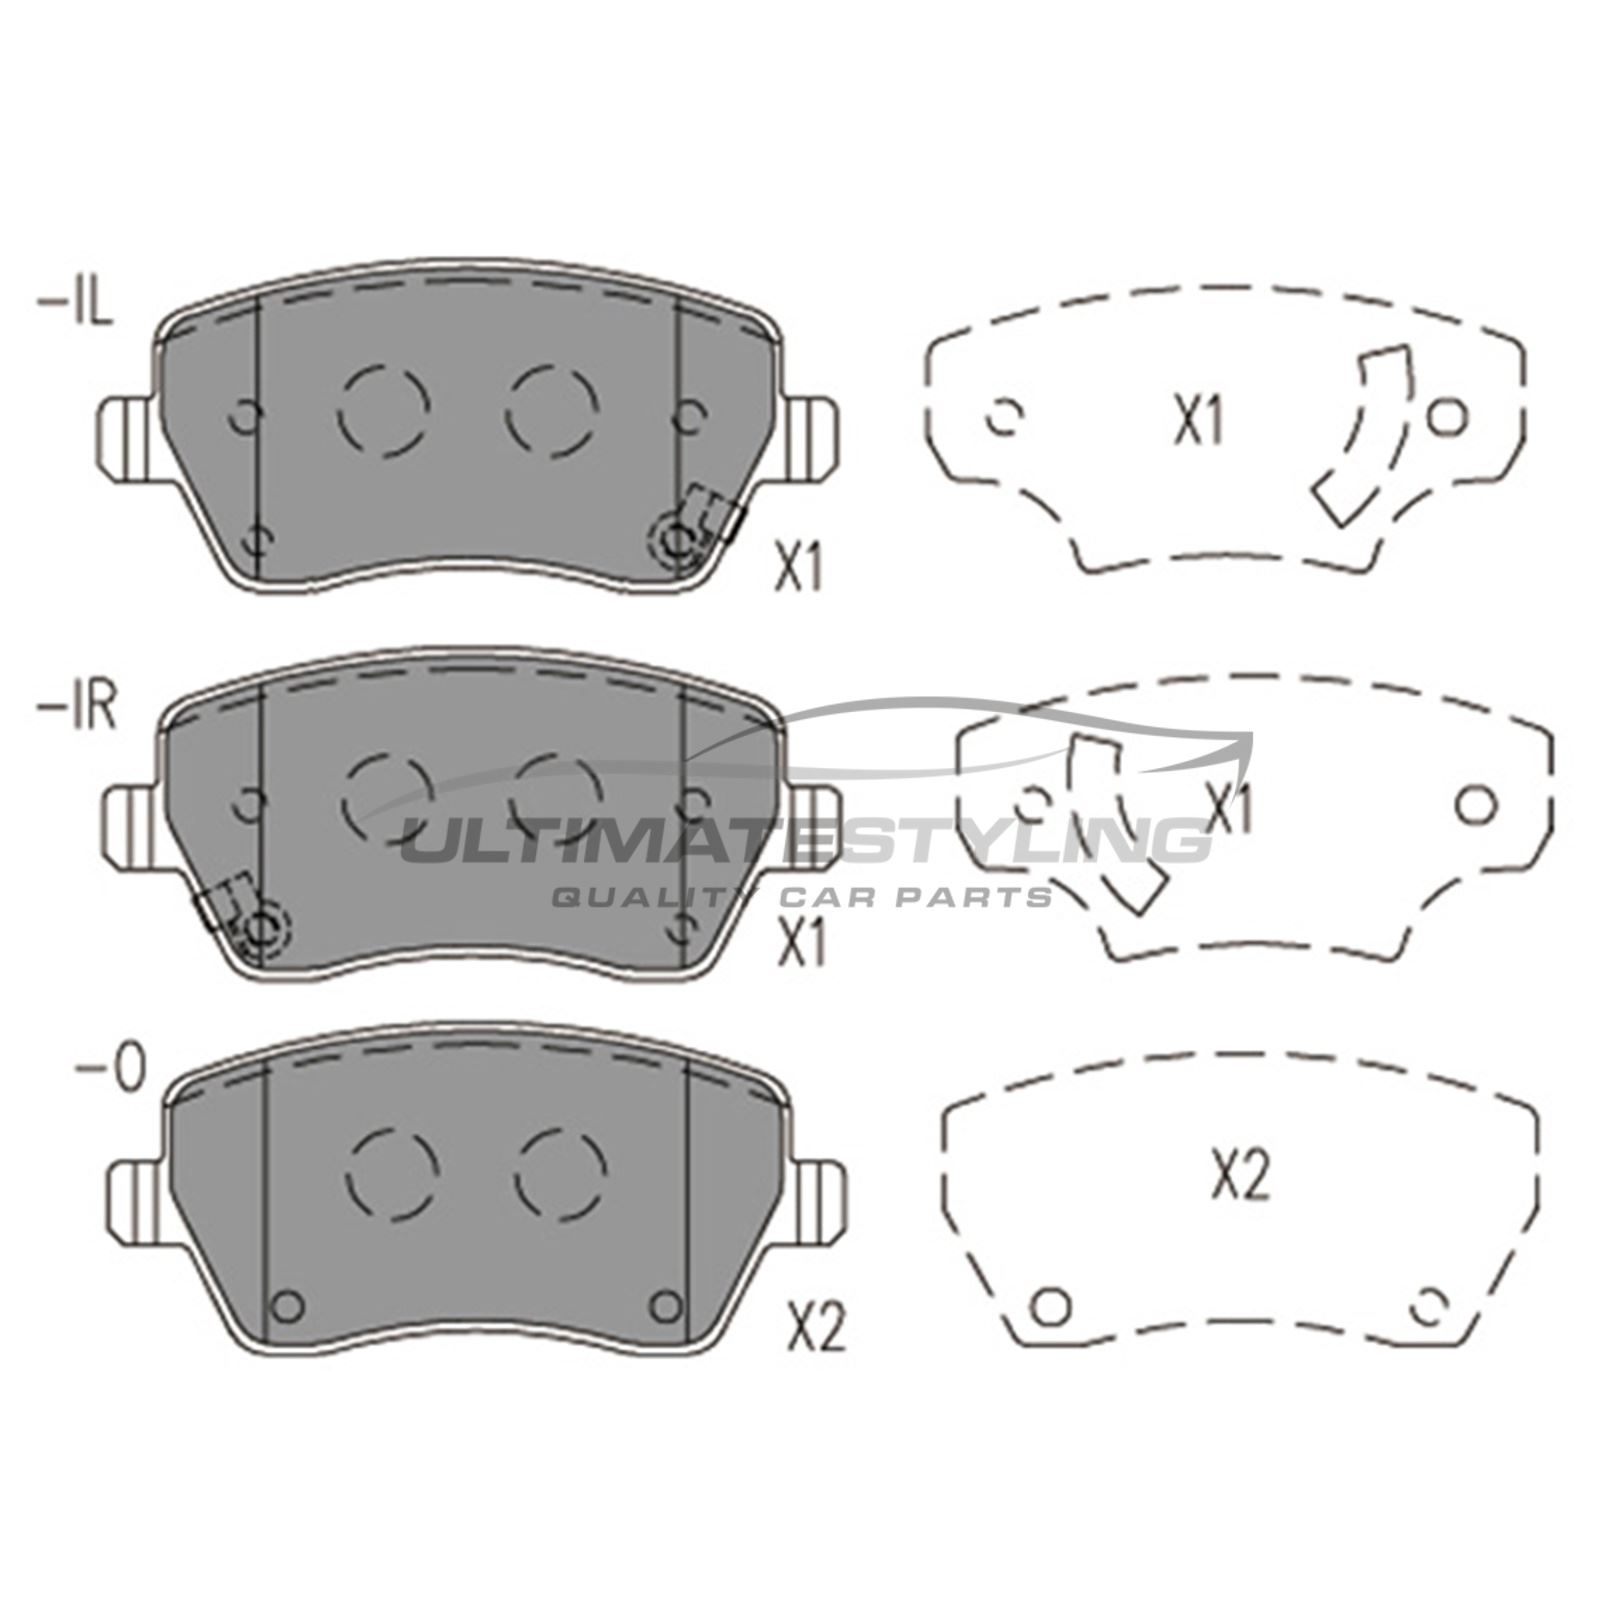 FOR NISSAN MICRA K13 1.2 2010-2017 FRONT BRAKE PADS SET OF 4